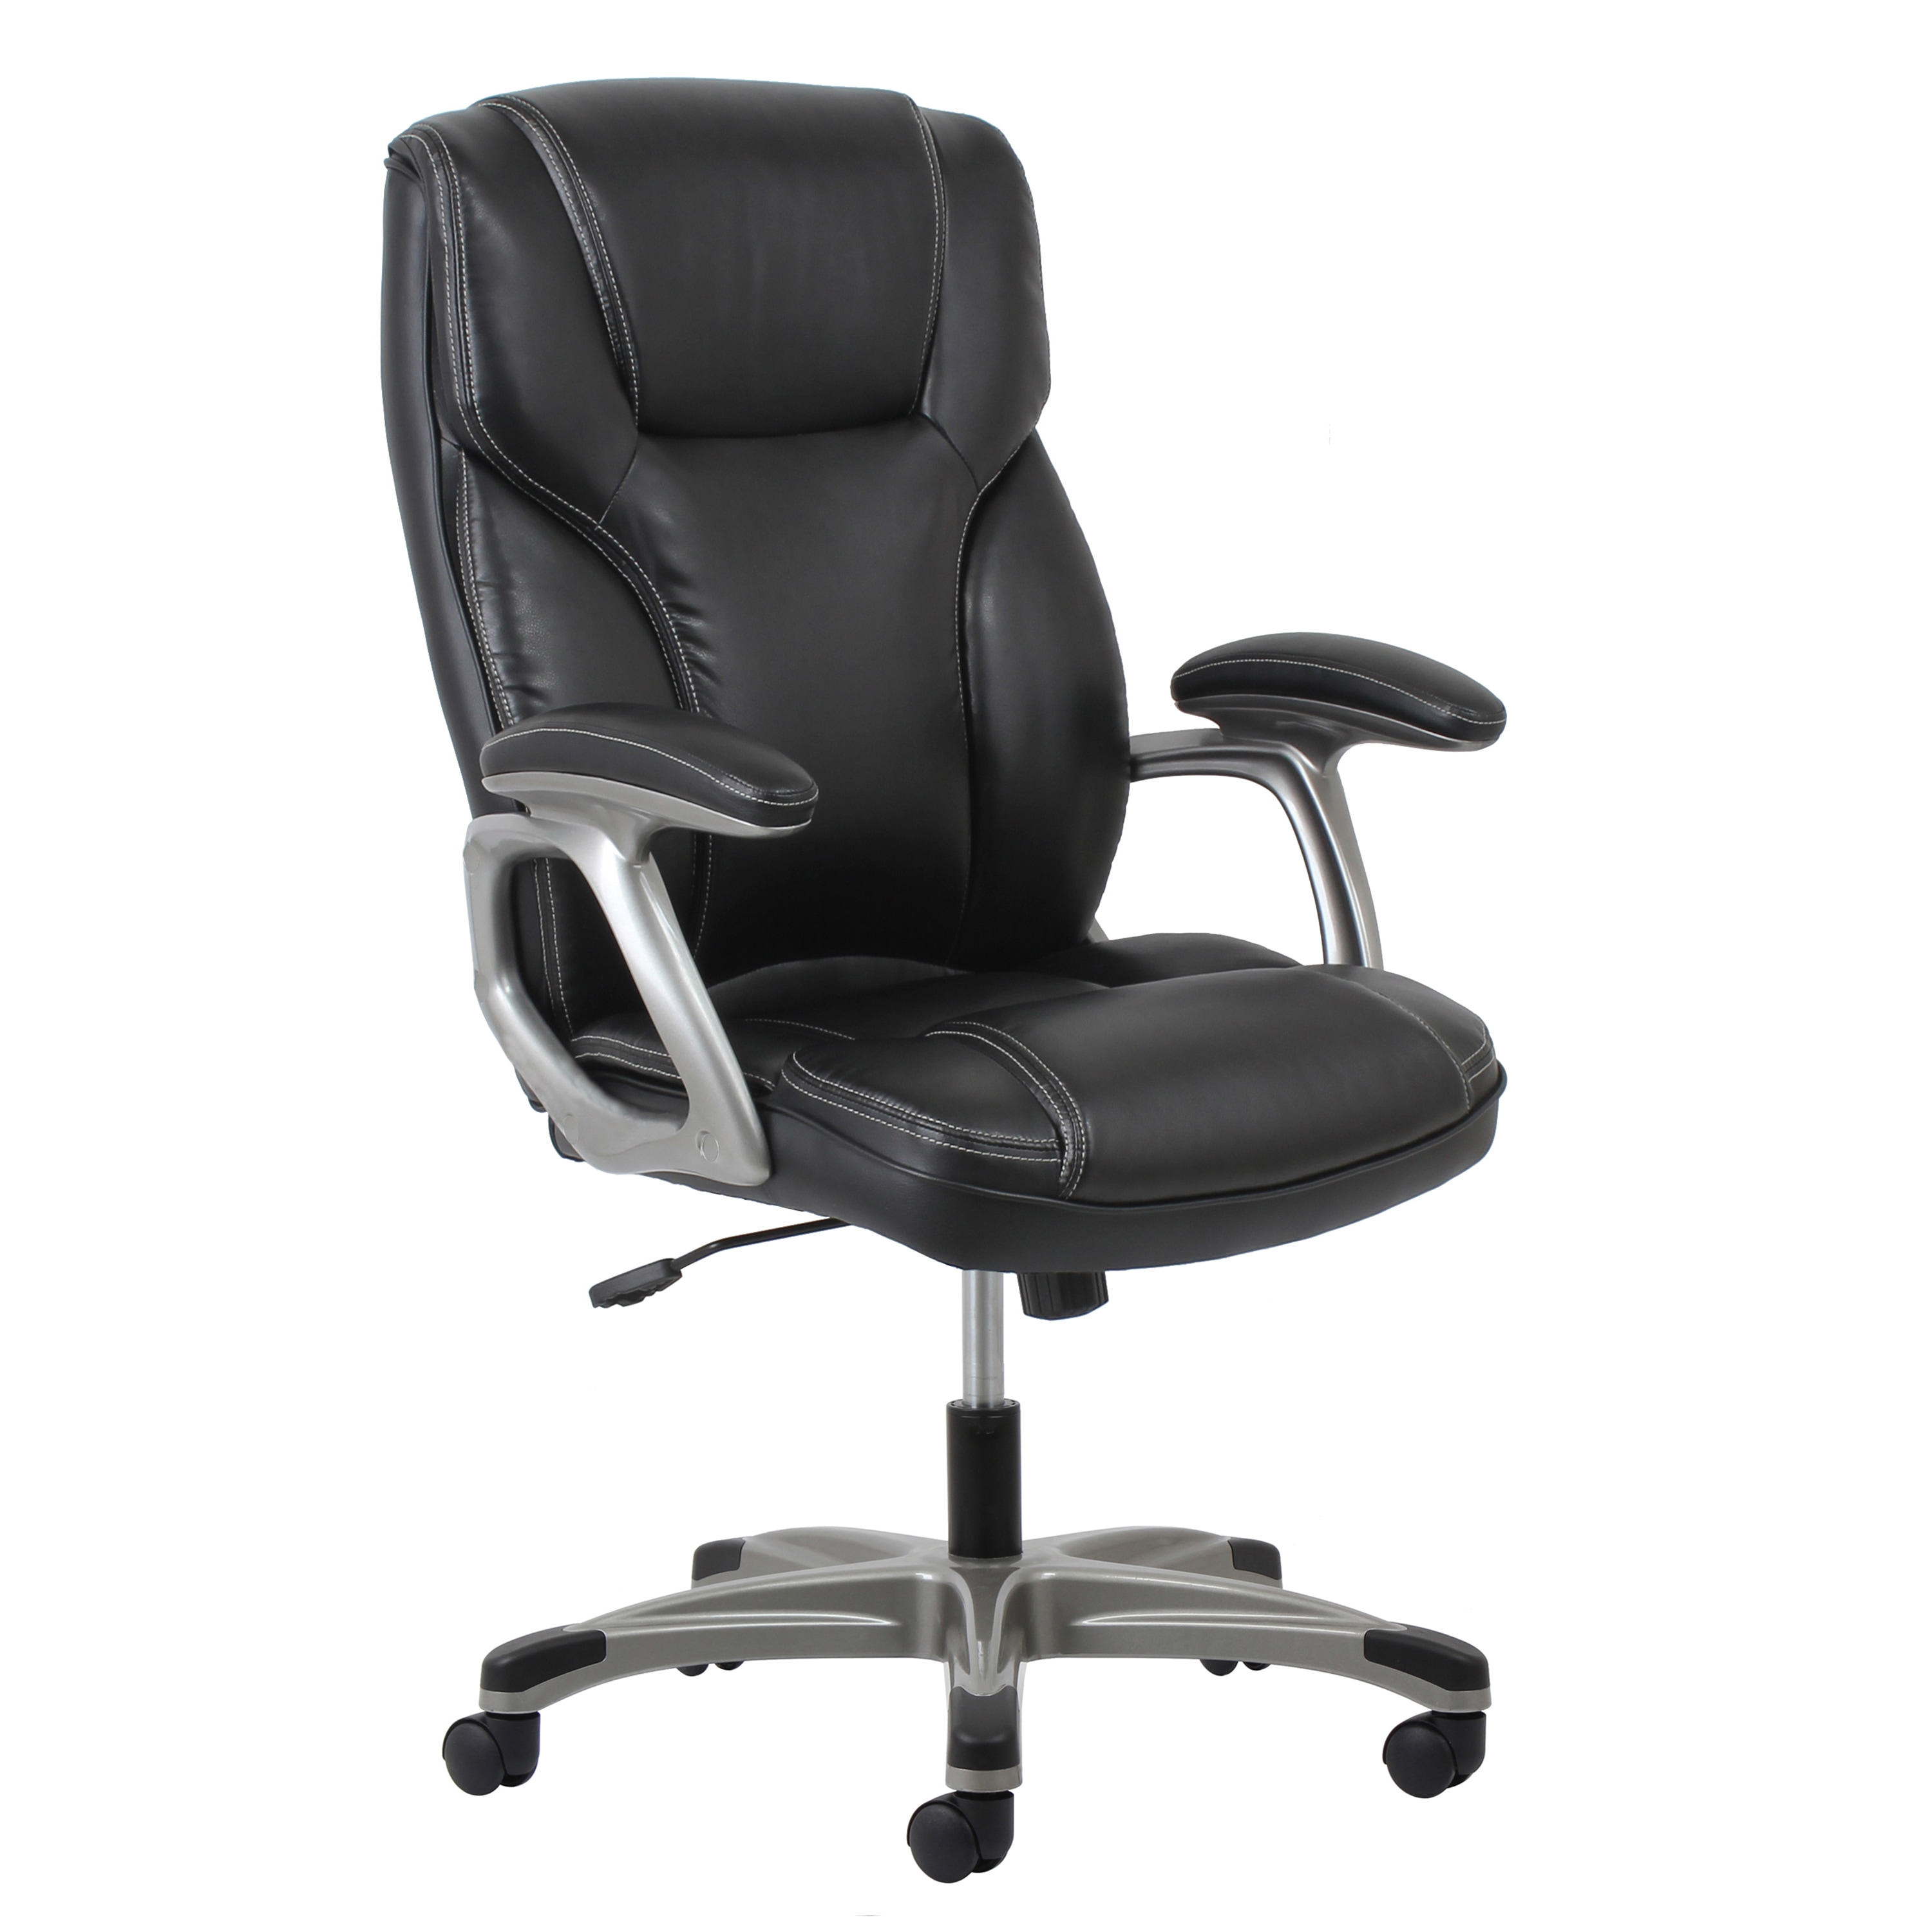 Prime Leather Office Conference Room Chairs Shop Online At Creativecarmelina Interior Chair Design Creativecarmelinacom